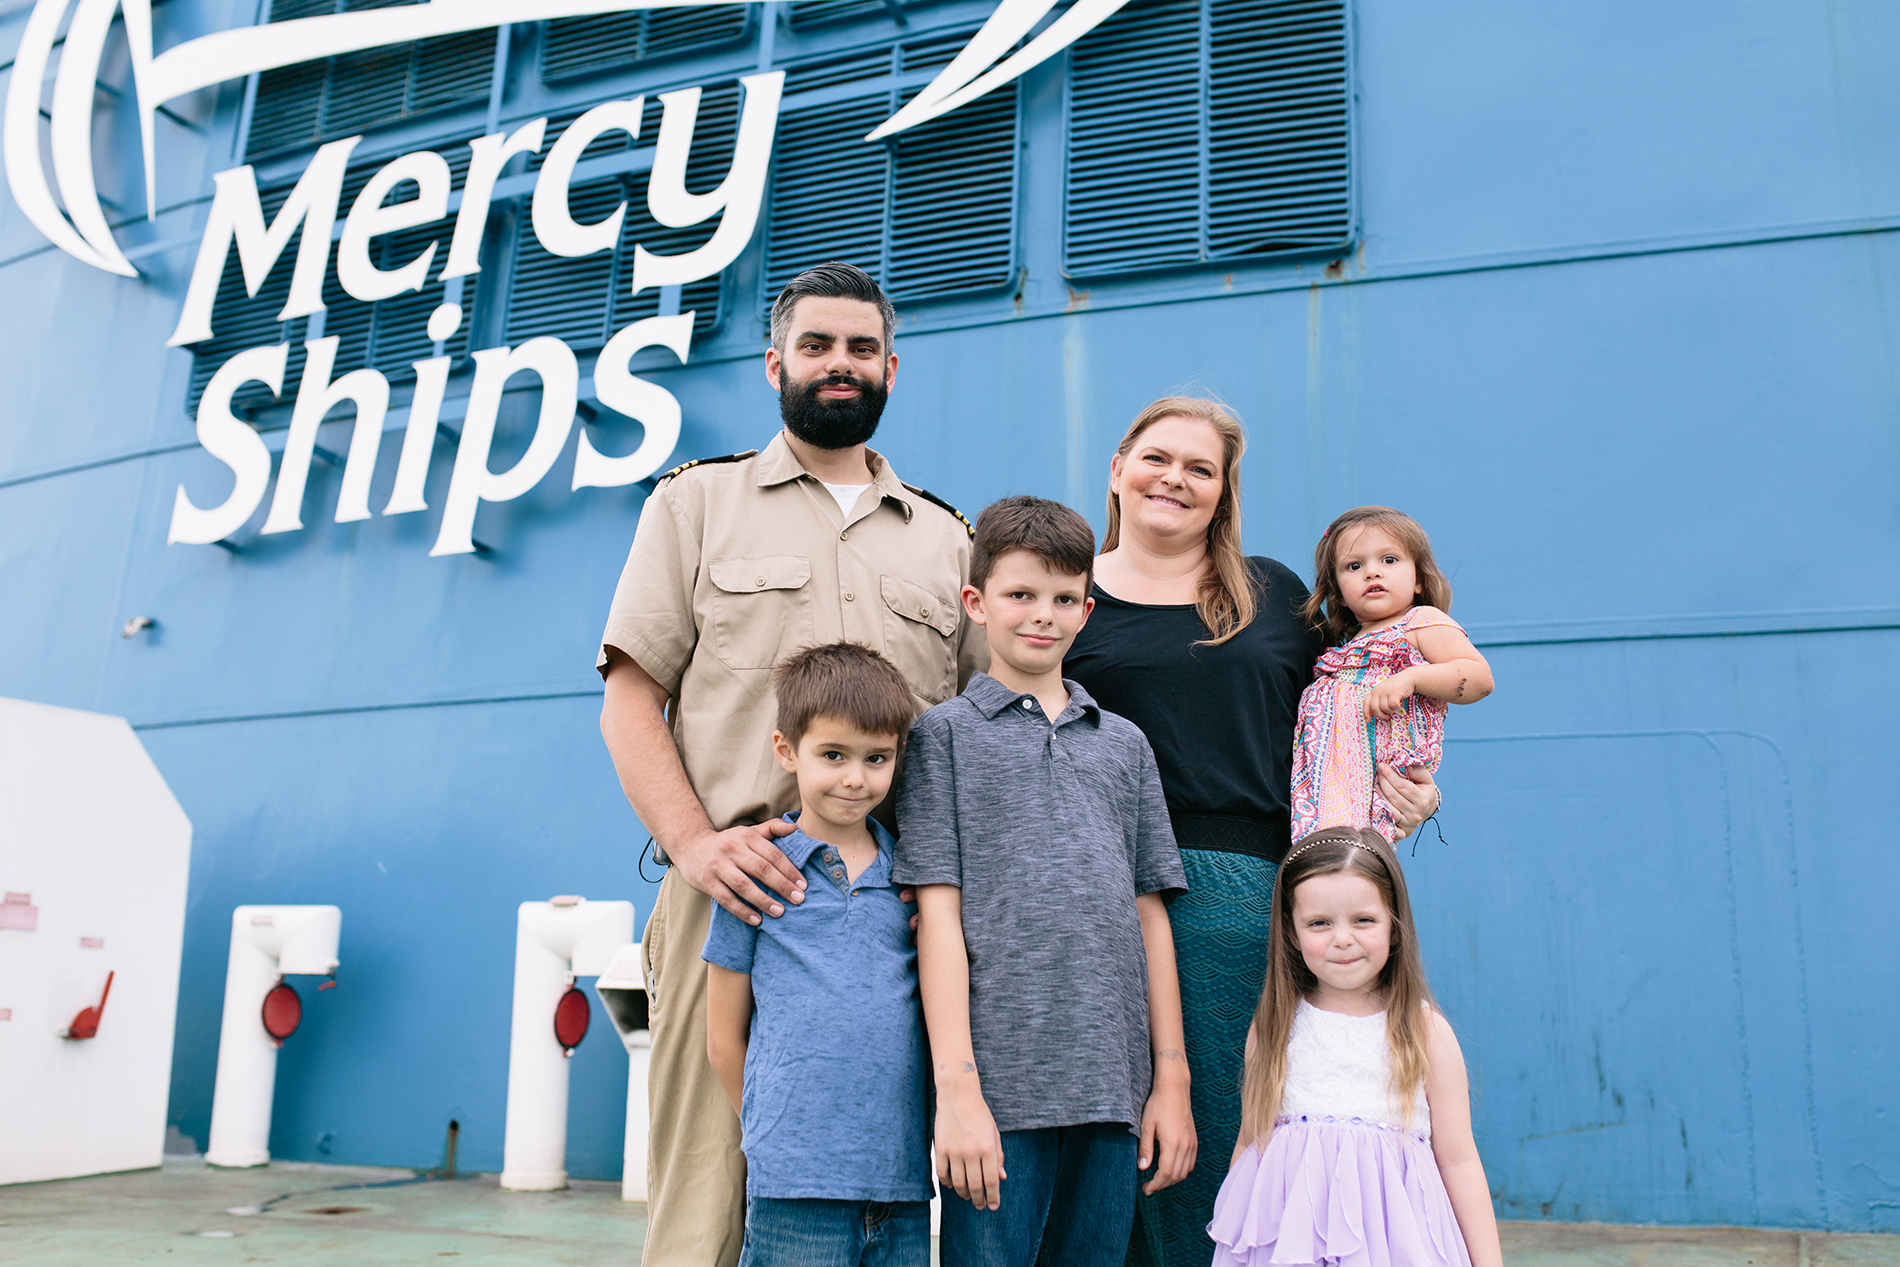 Justin and Jenni Brunenkant with their four children onboard the Africa Mercy. ©Mercy Ships, credit/ Shawn Thompson